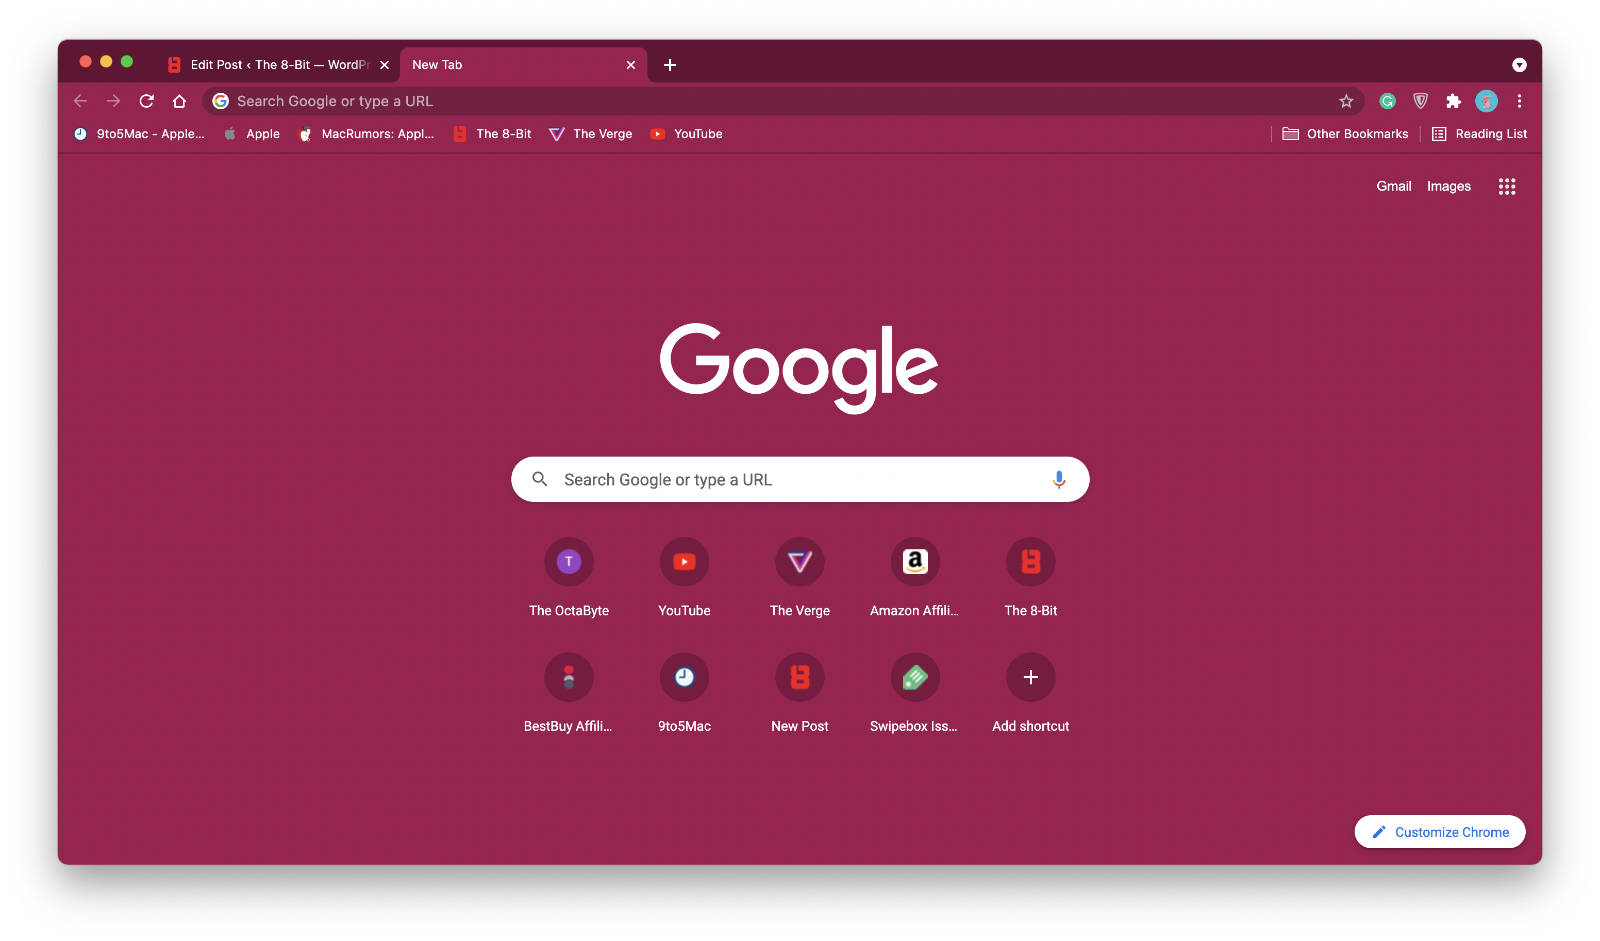 Chrome's window themed with red color.